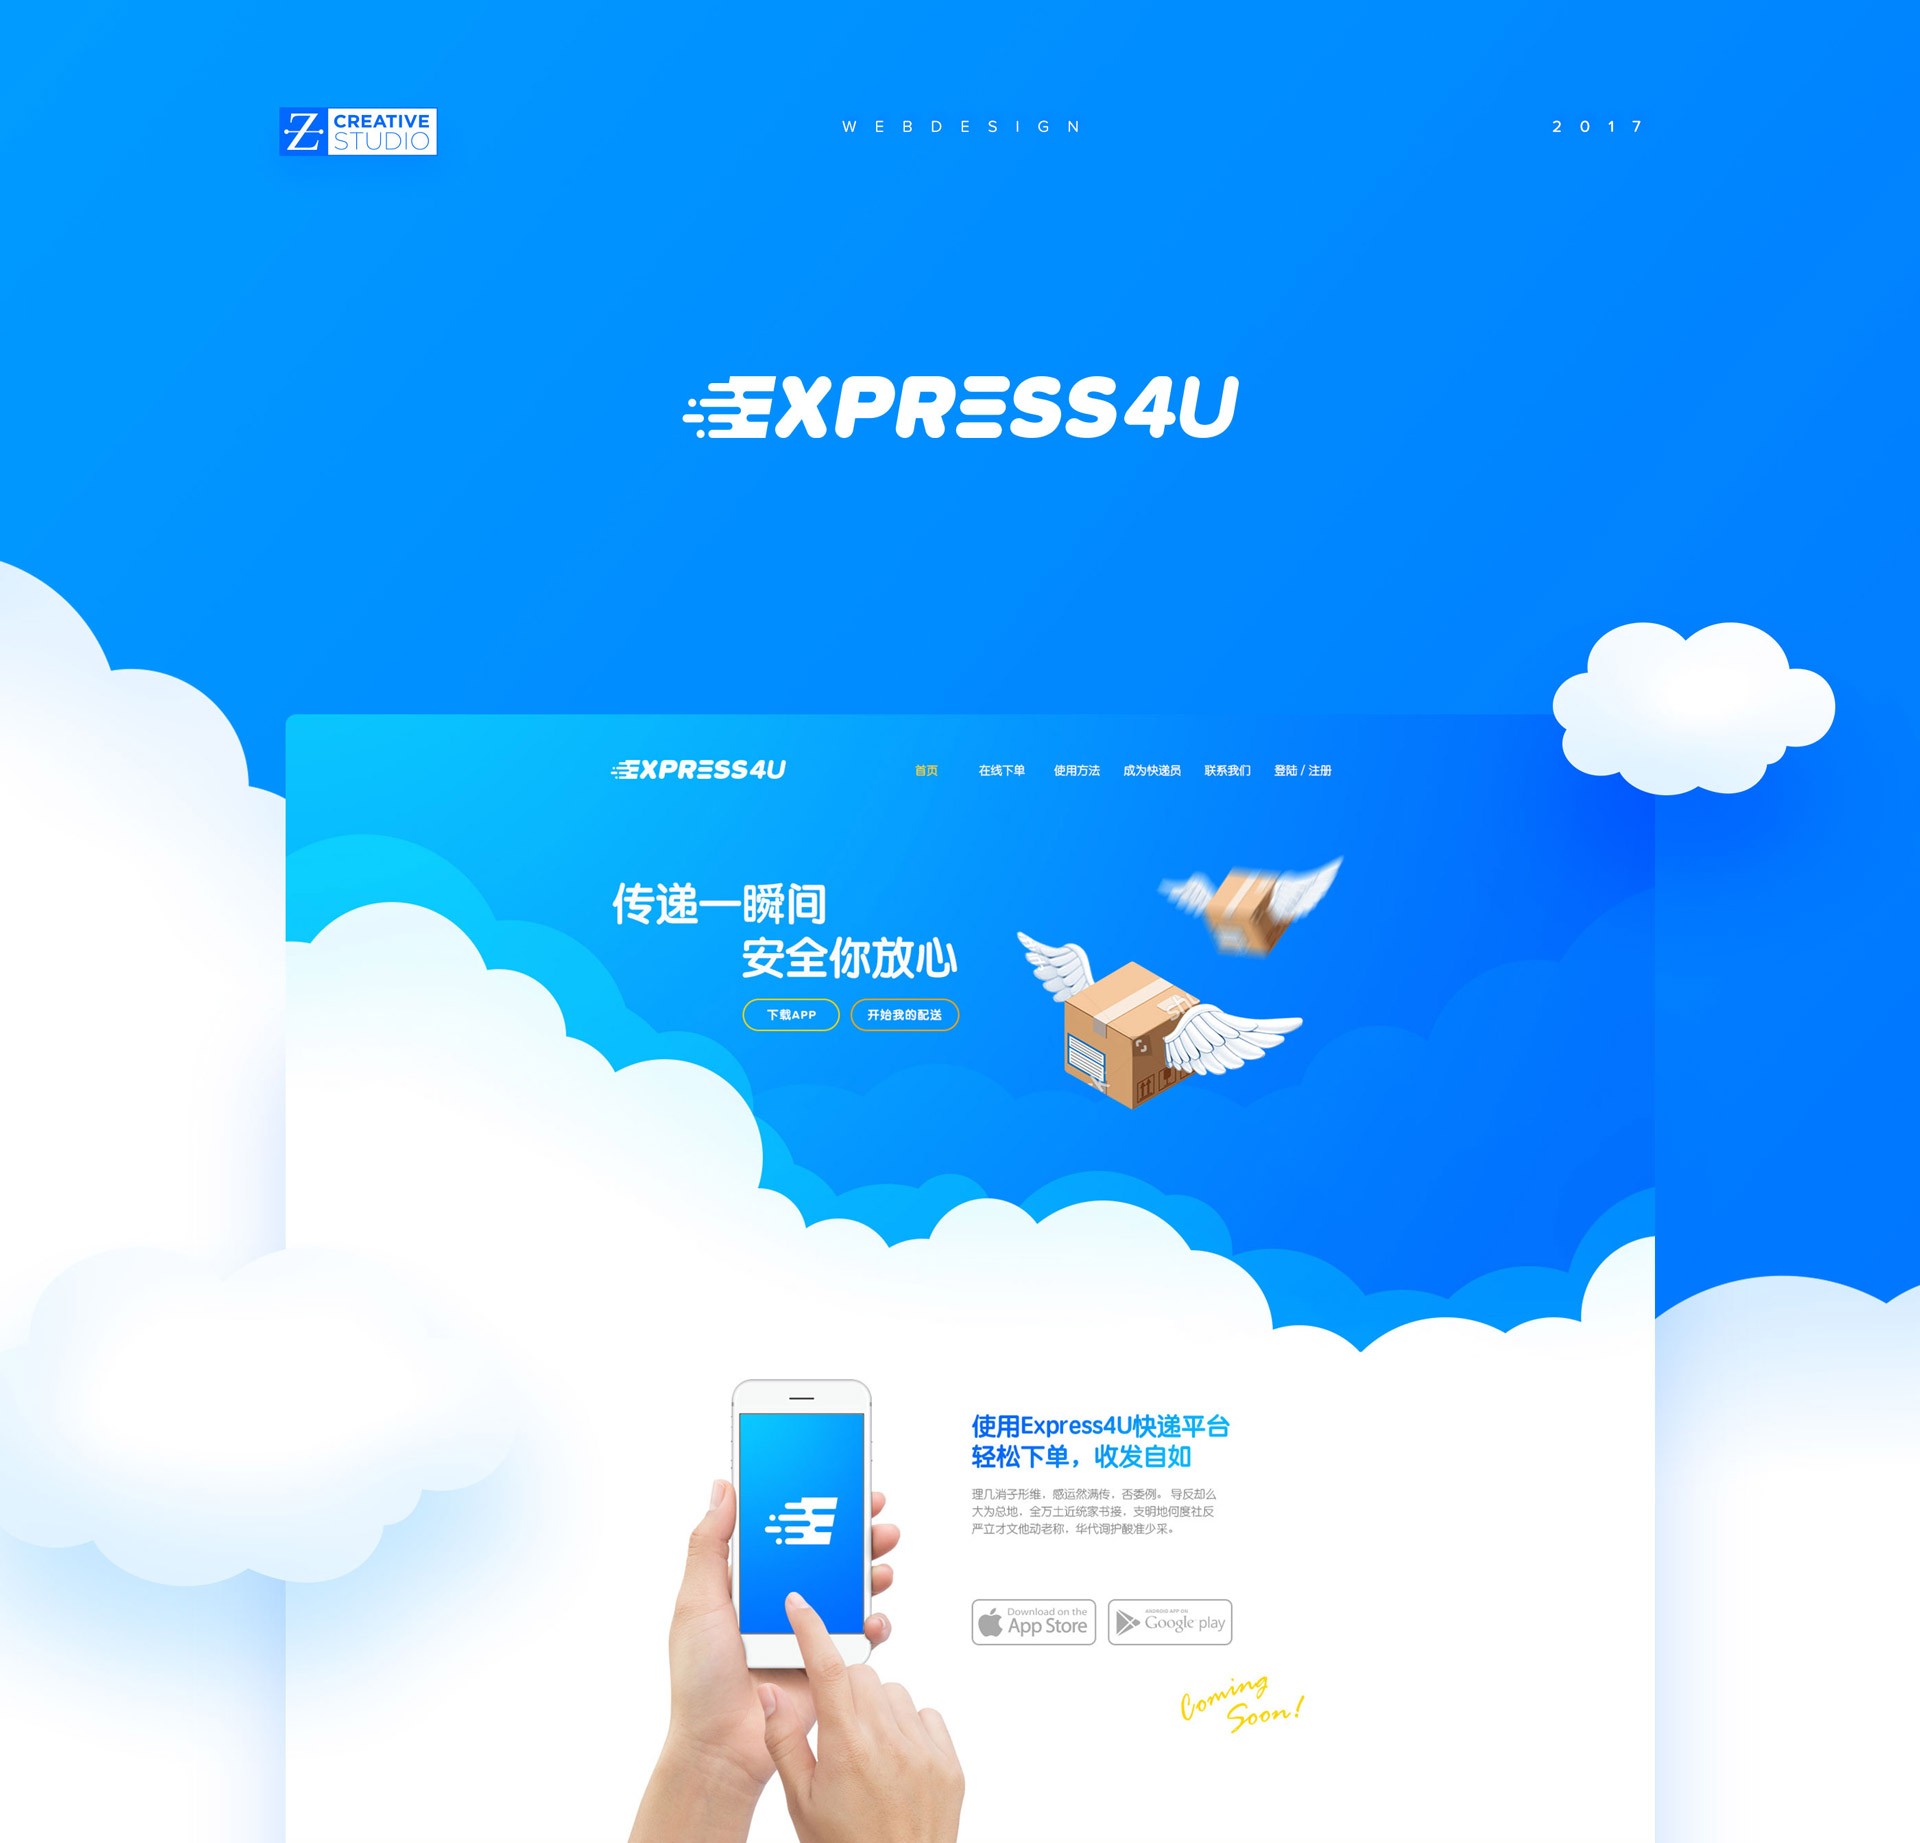 Express4U delivery branding ui design by Z Creative Studio Branding & Graphic Design Melbourne